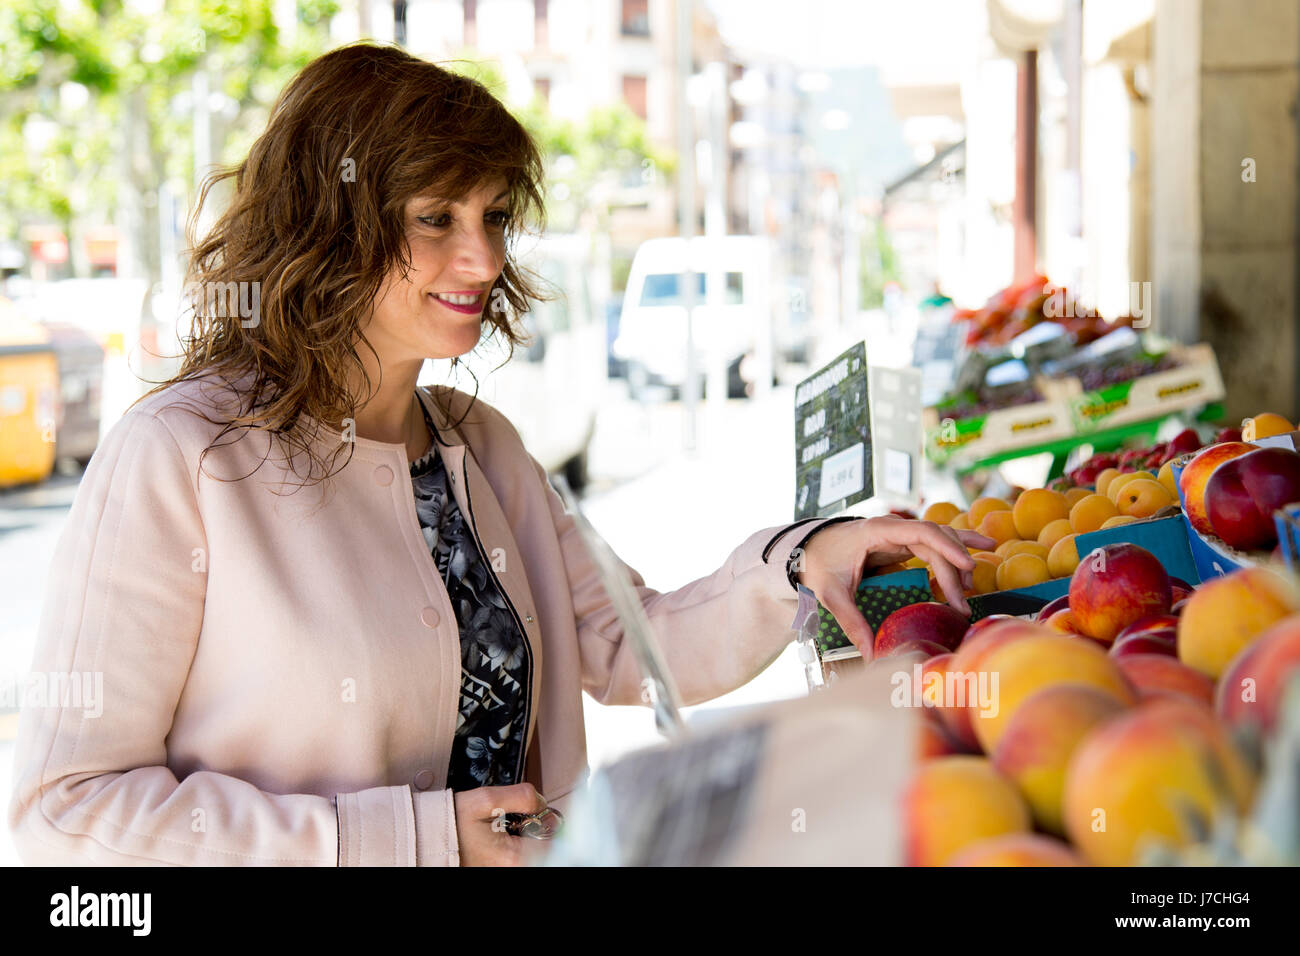 Attractive middle aged woman buying fruit at street market Stock Photo